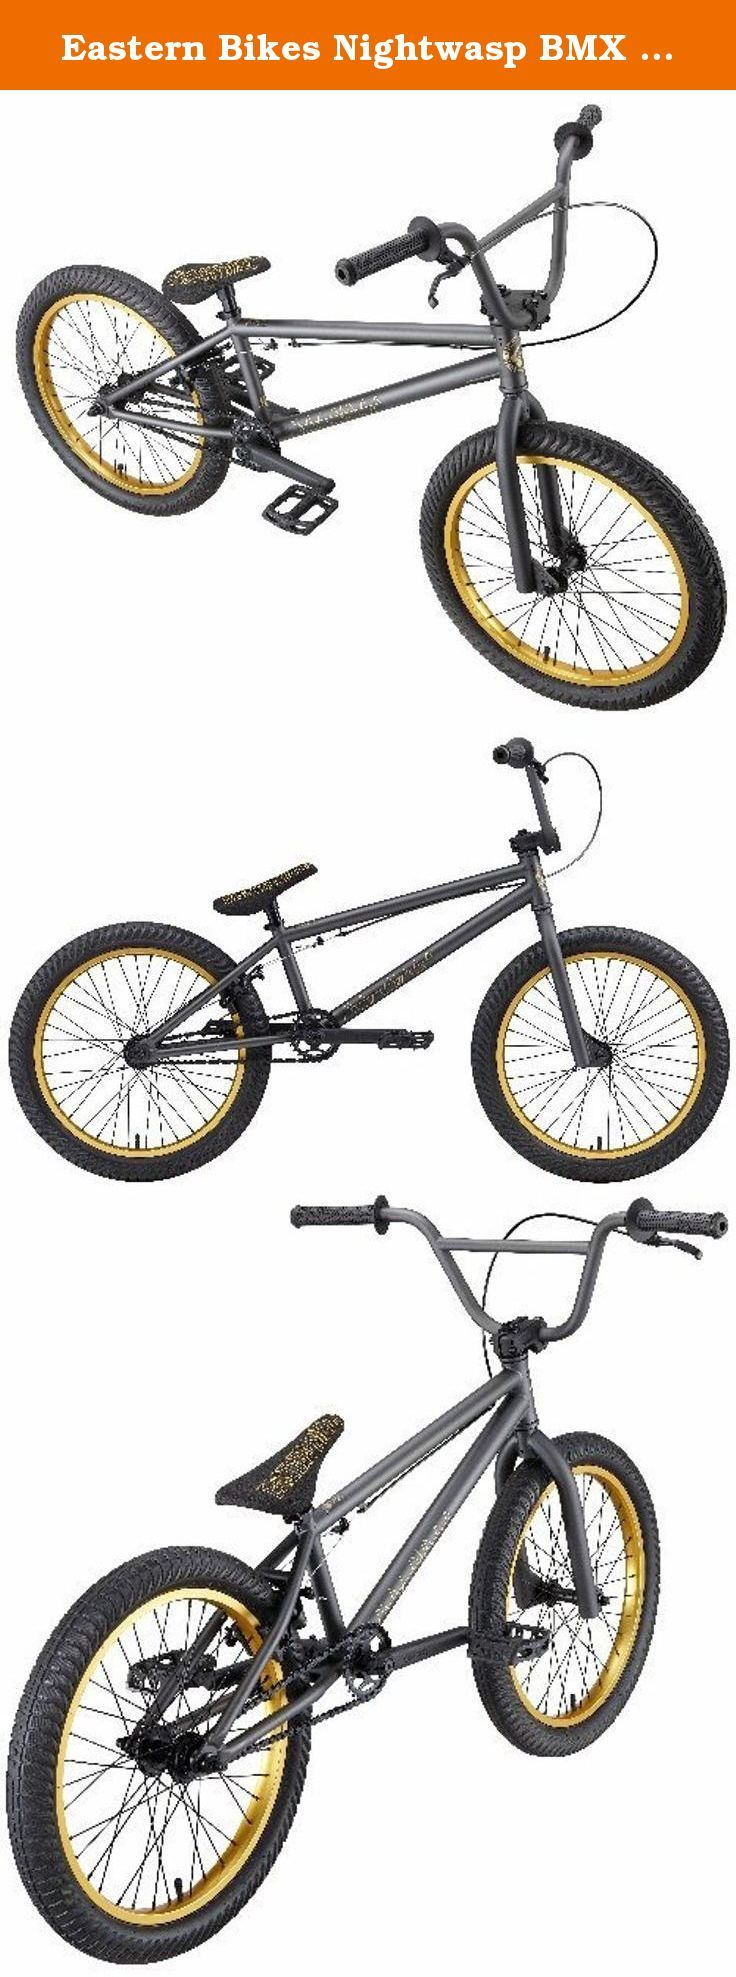 Eastern Bikes Nightwasp BMX Bike (Matte Graphite Black with Gold, 20-Inch). The Eastern Nightwasp is the top of the line for beginner level bikes. 25/9 gearing coupled with plenty of authentic Eastern Bikes parts and double wall rims front and rear make this bike a home run!.